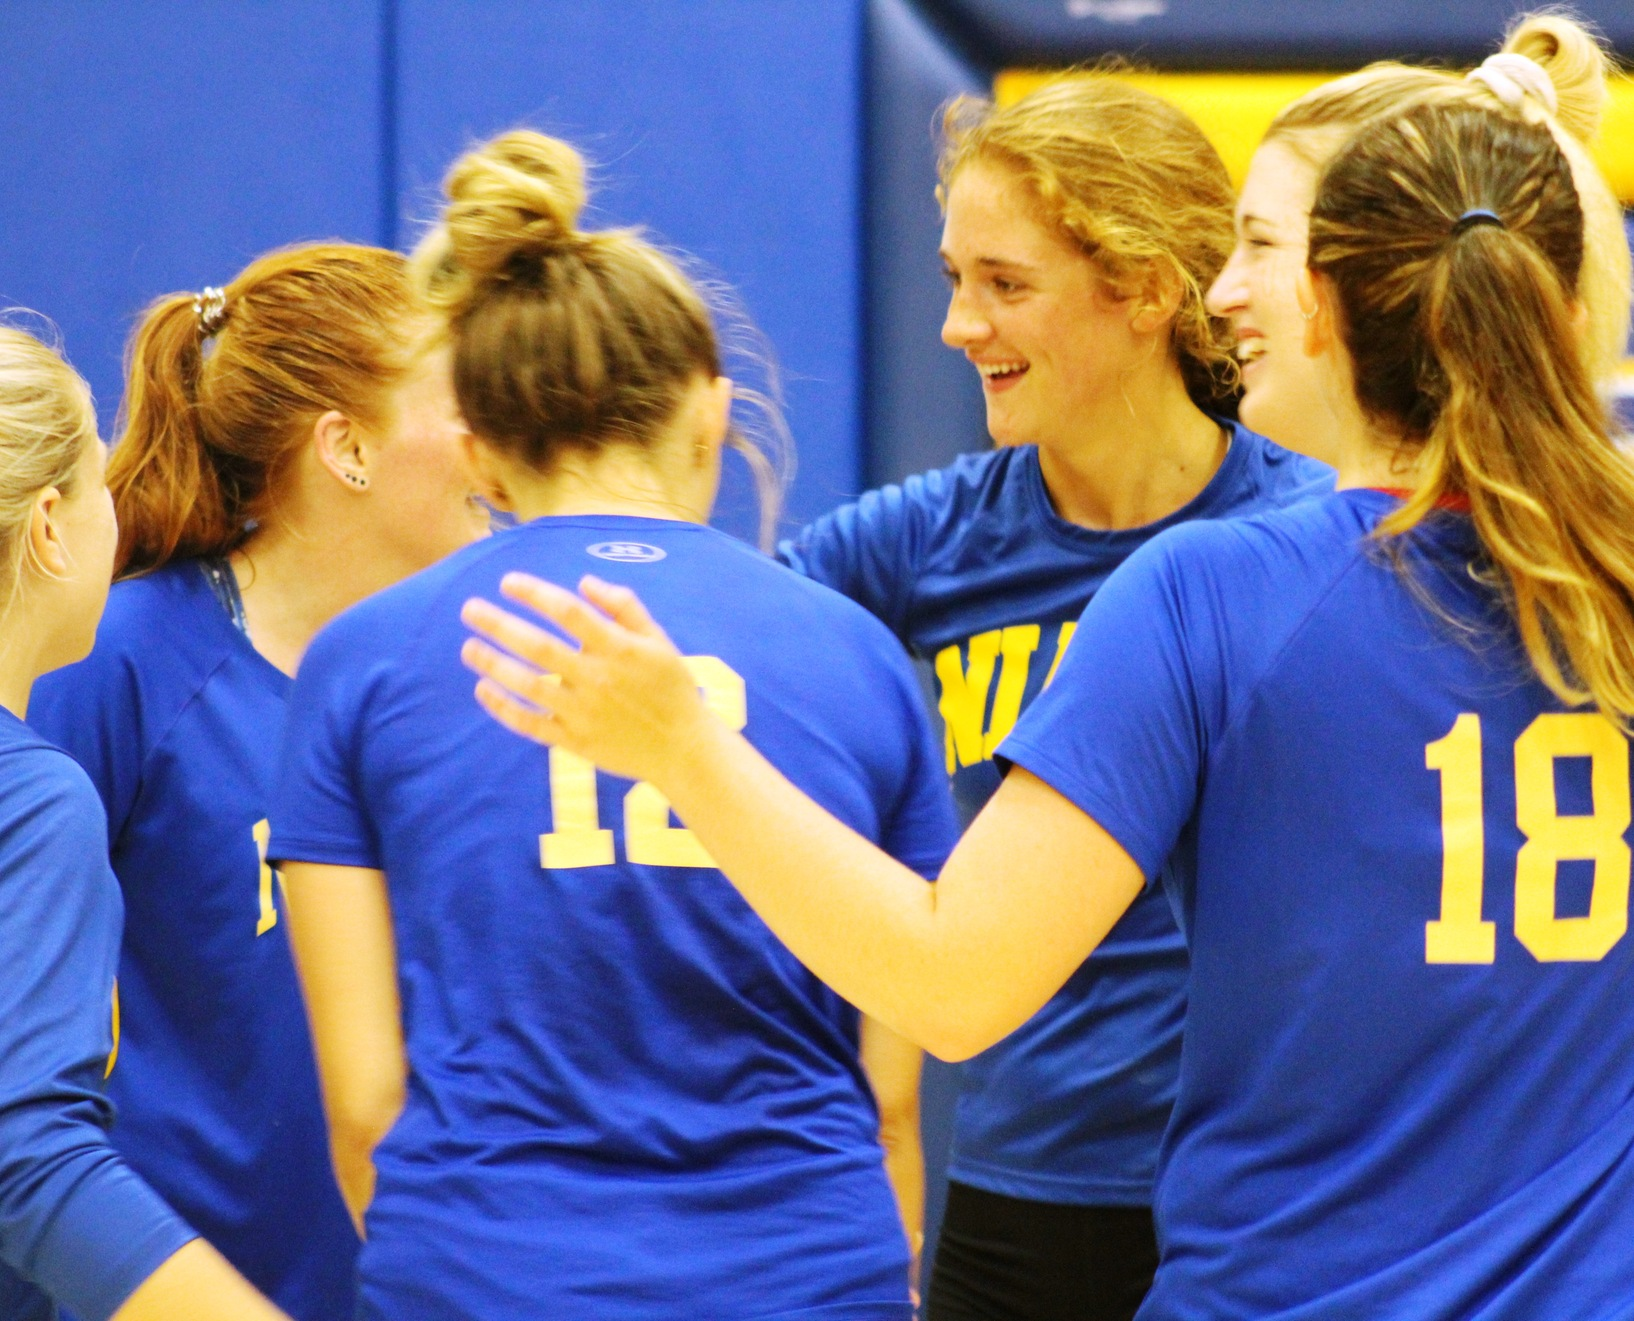 NIACC players celebrate a point in last Friday's scrimmage against Iowa Central.